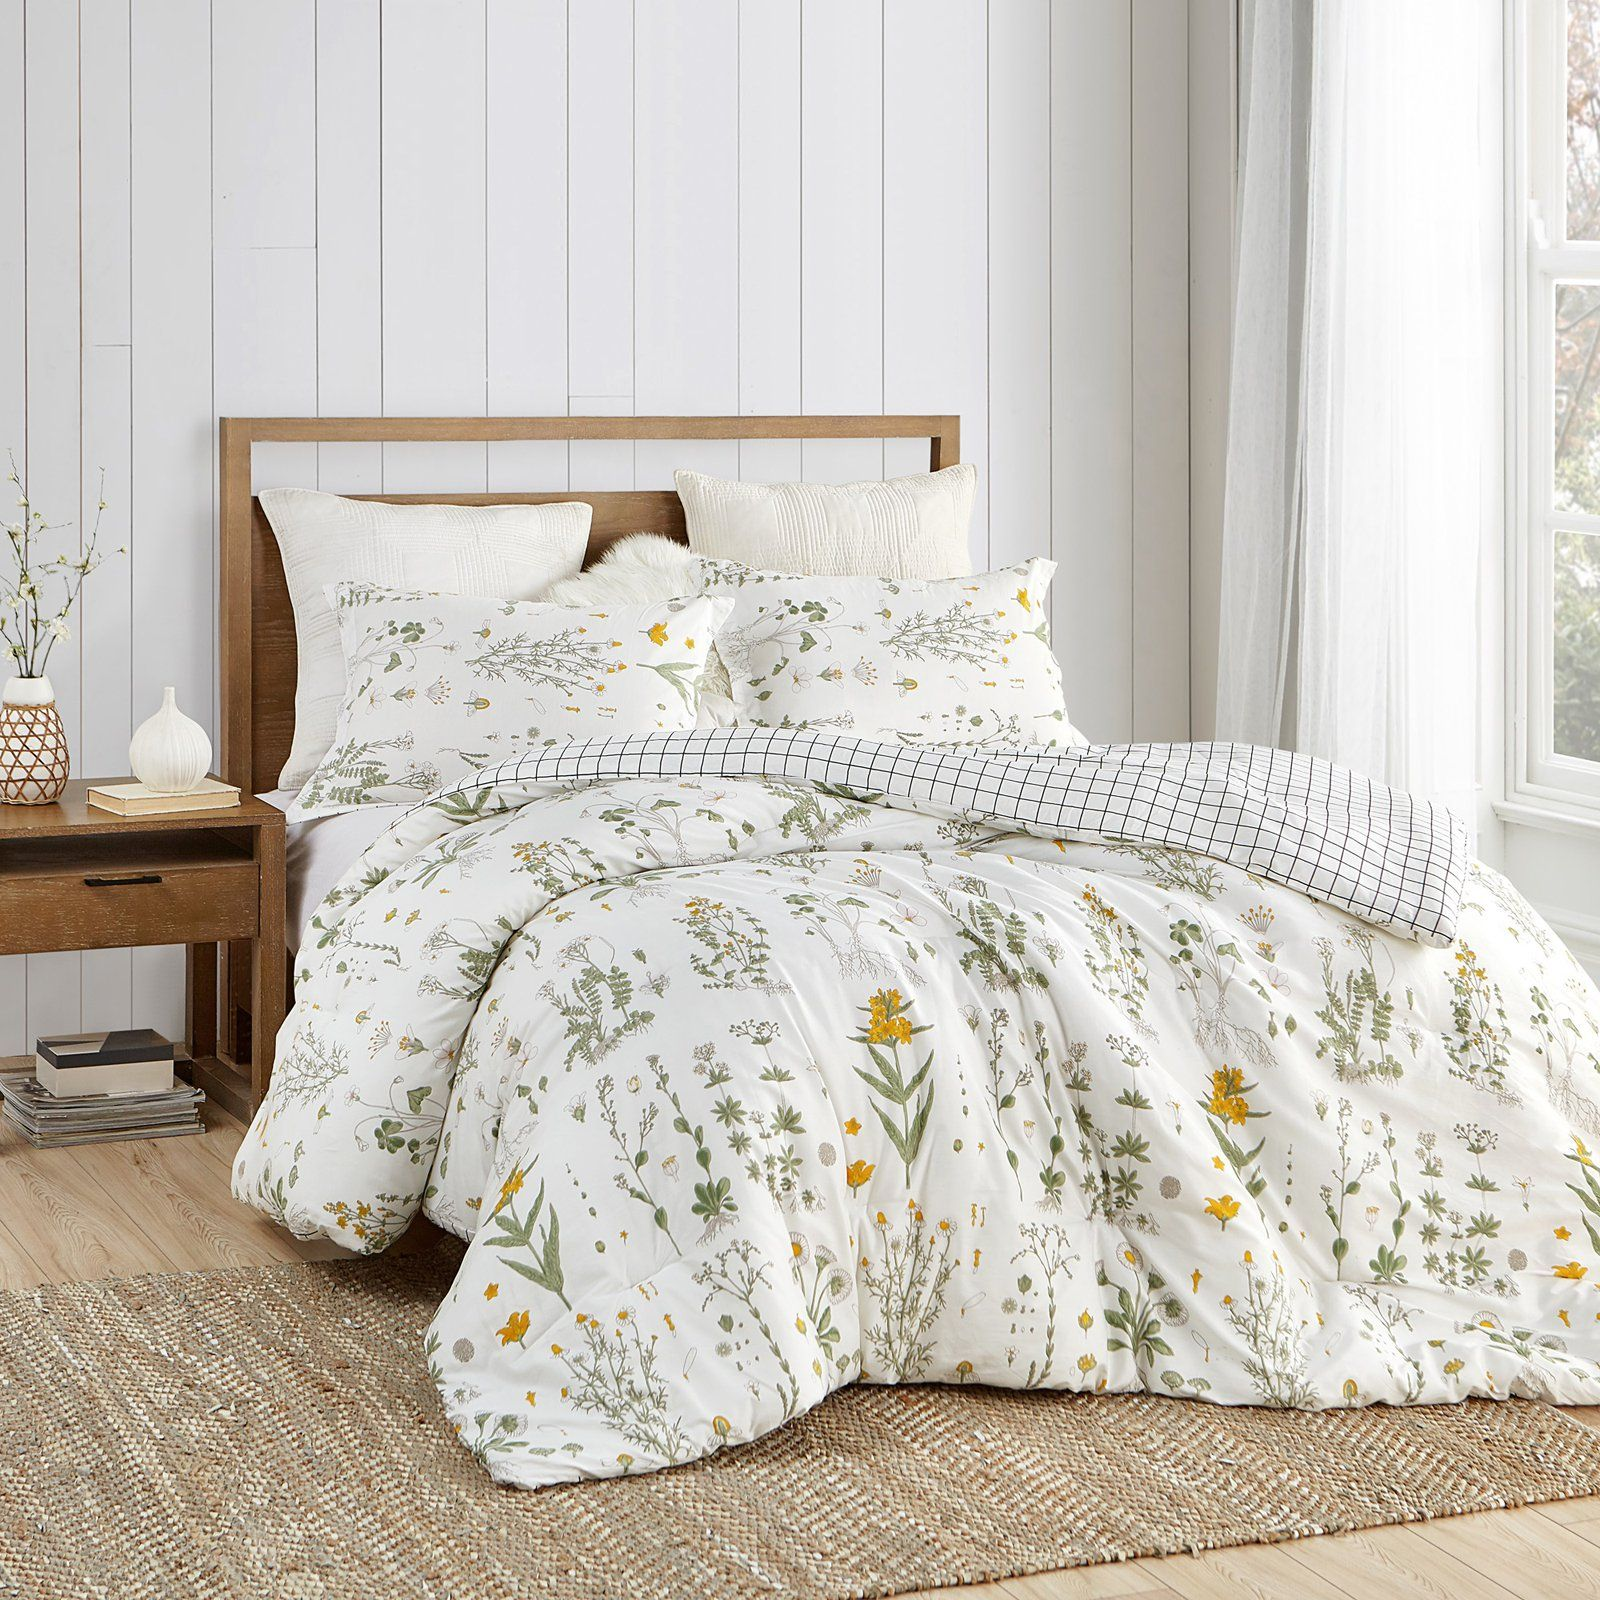 Country Days 100 Cotton Comforter By Byourbed In 2020 Comforter Sets Dorm Bedding Sets Bedroom Decor